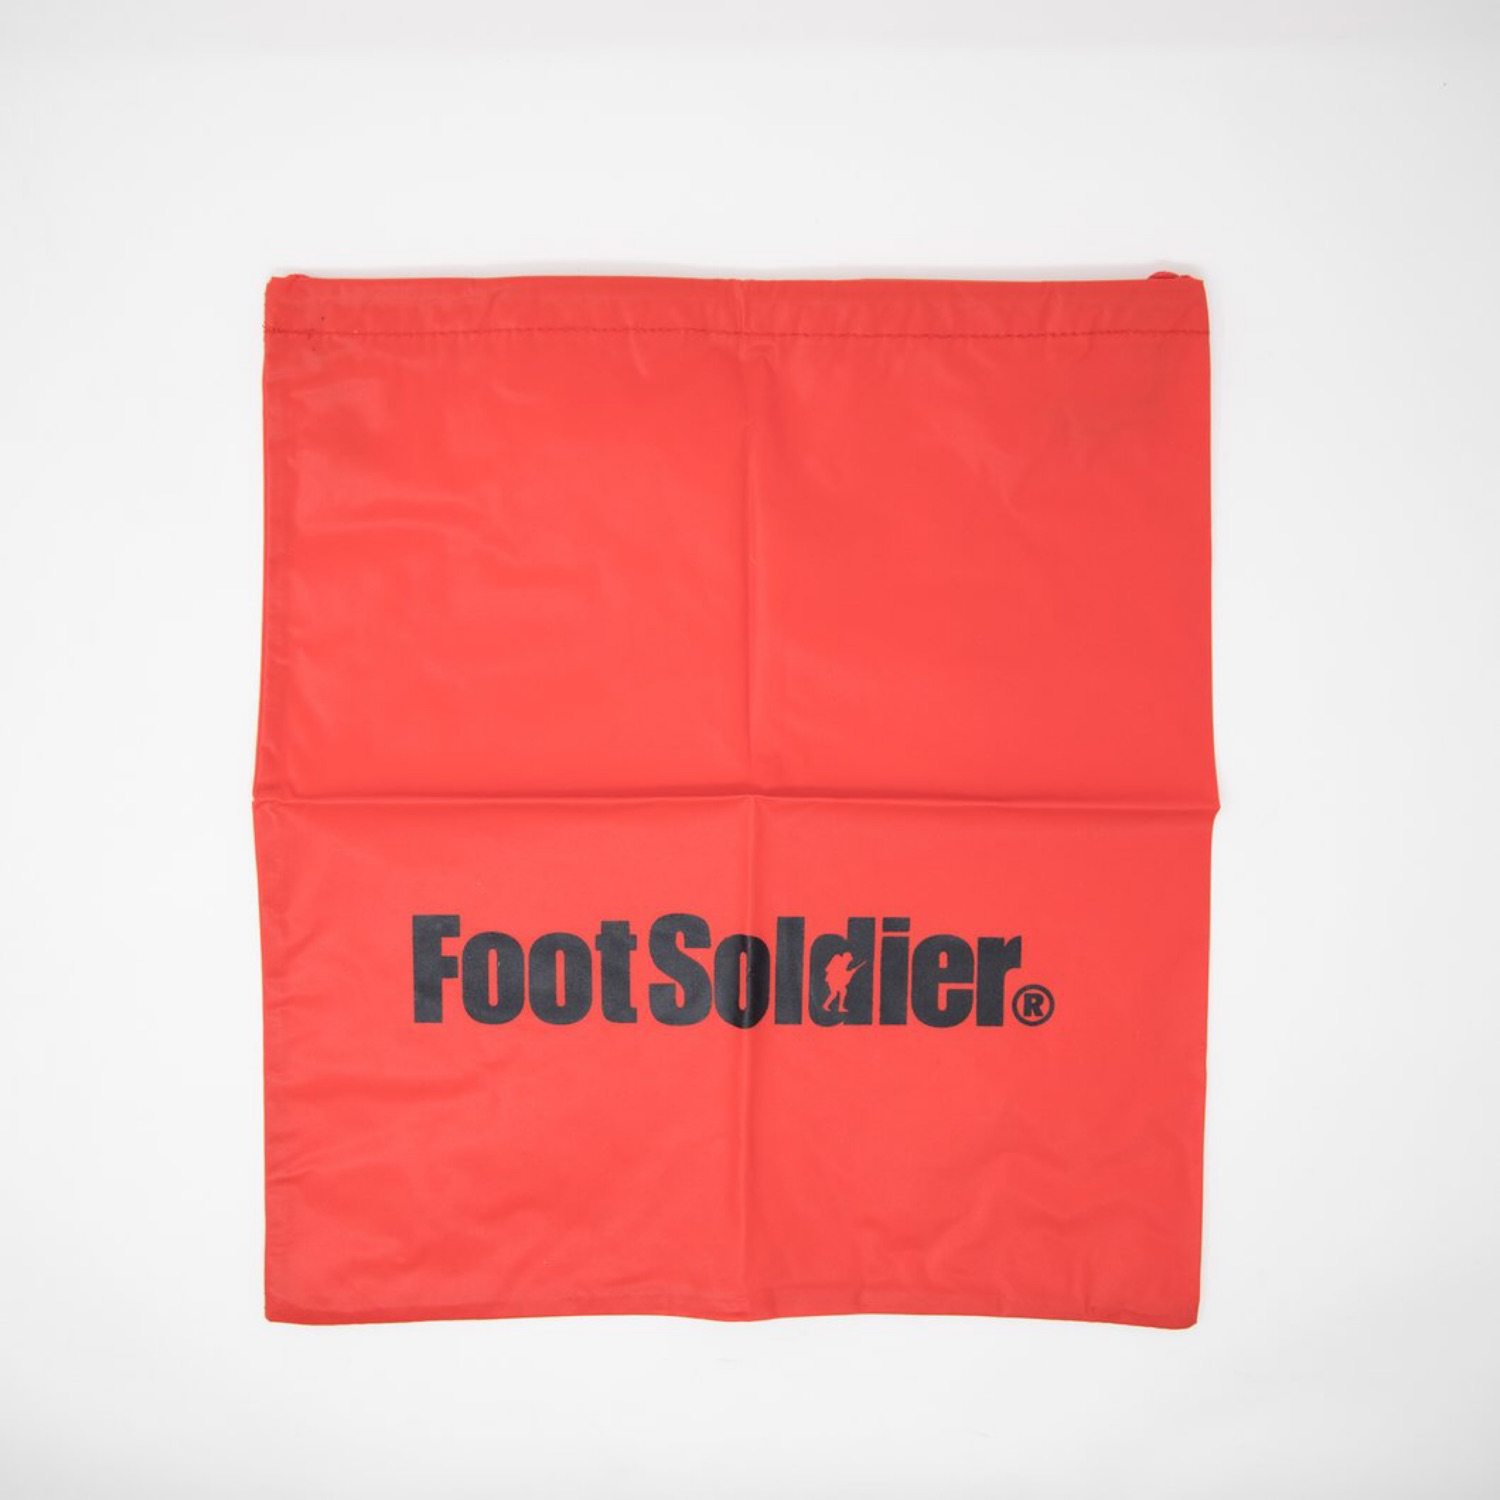 Bape Foot Soldier String Bag (New)